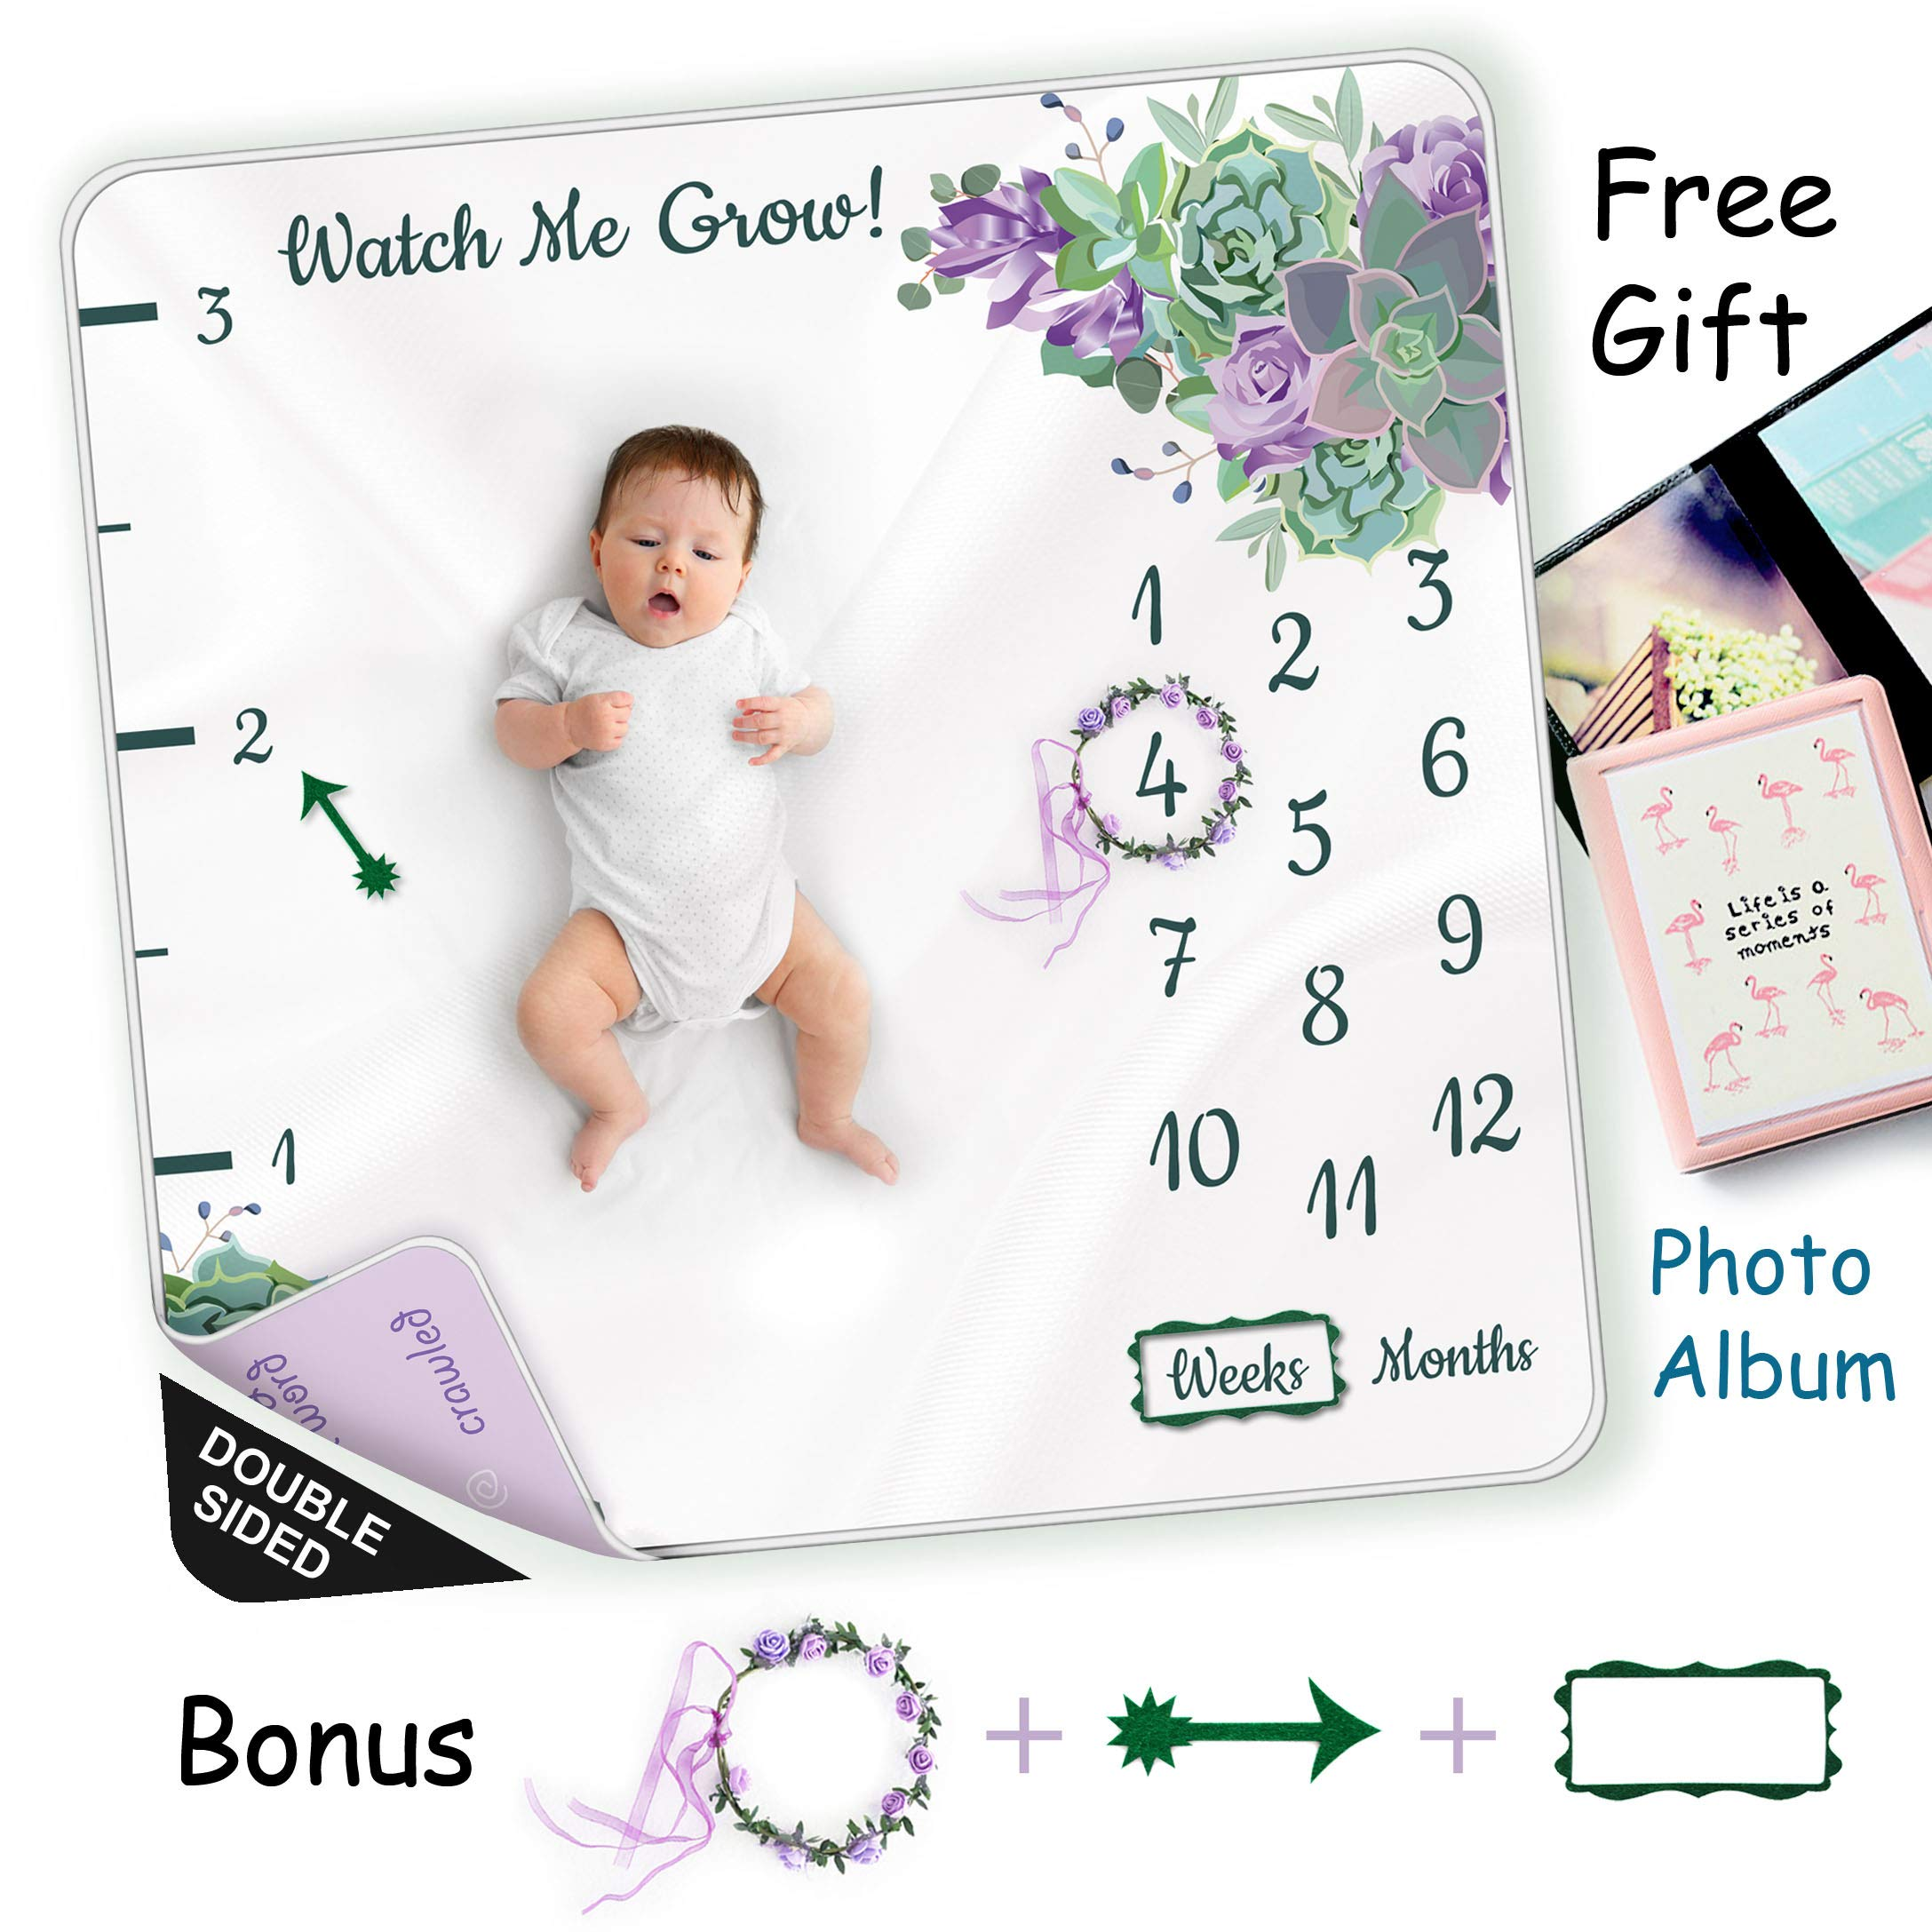 Double Sided Milestone Blanket for Baby Girl or boy to Mark Height, Months, Weeks and Special Moments|Perfect Baby Shower Gift|Monthly, Weekly and milestones Marker|Wrinkle-Free|300GSM Fluffy Fleece by Arugumbaby